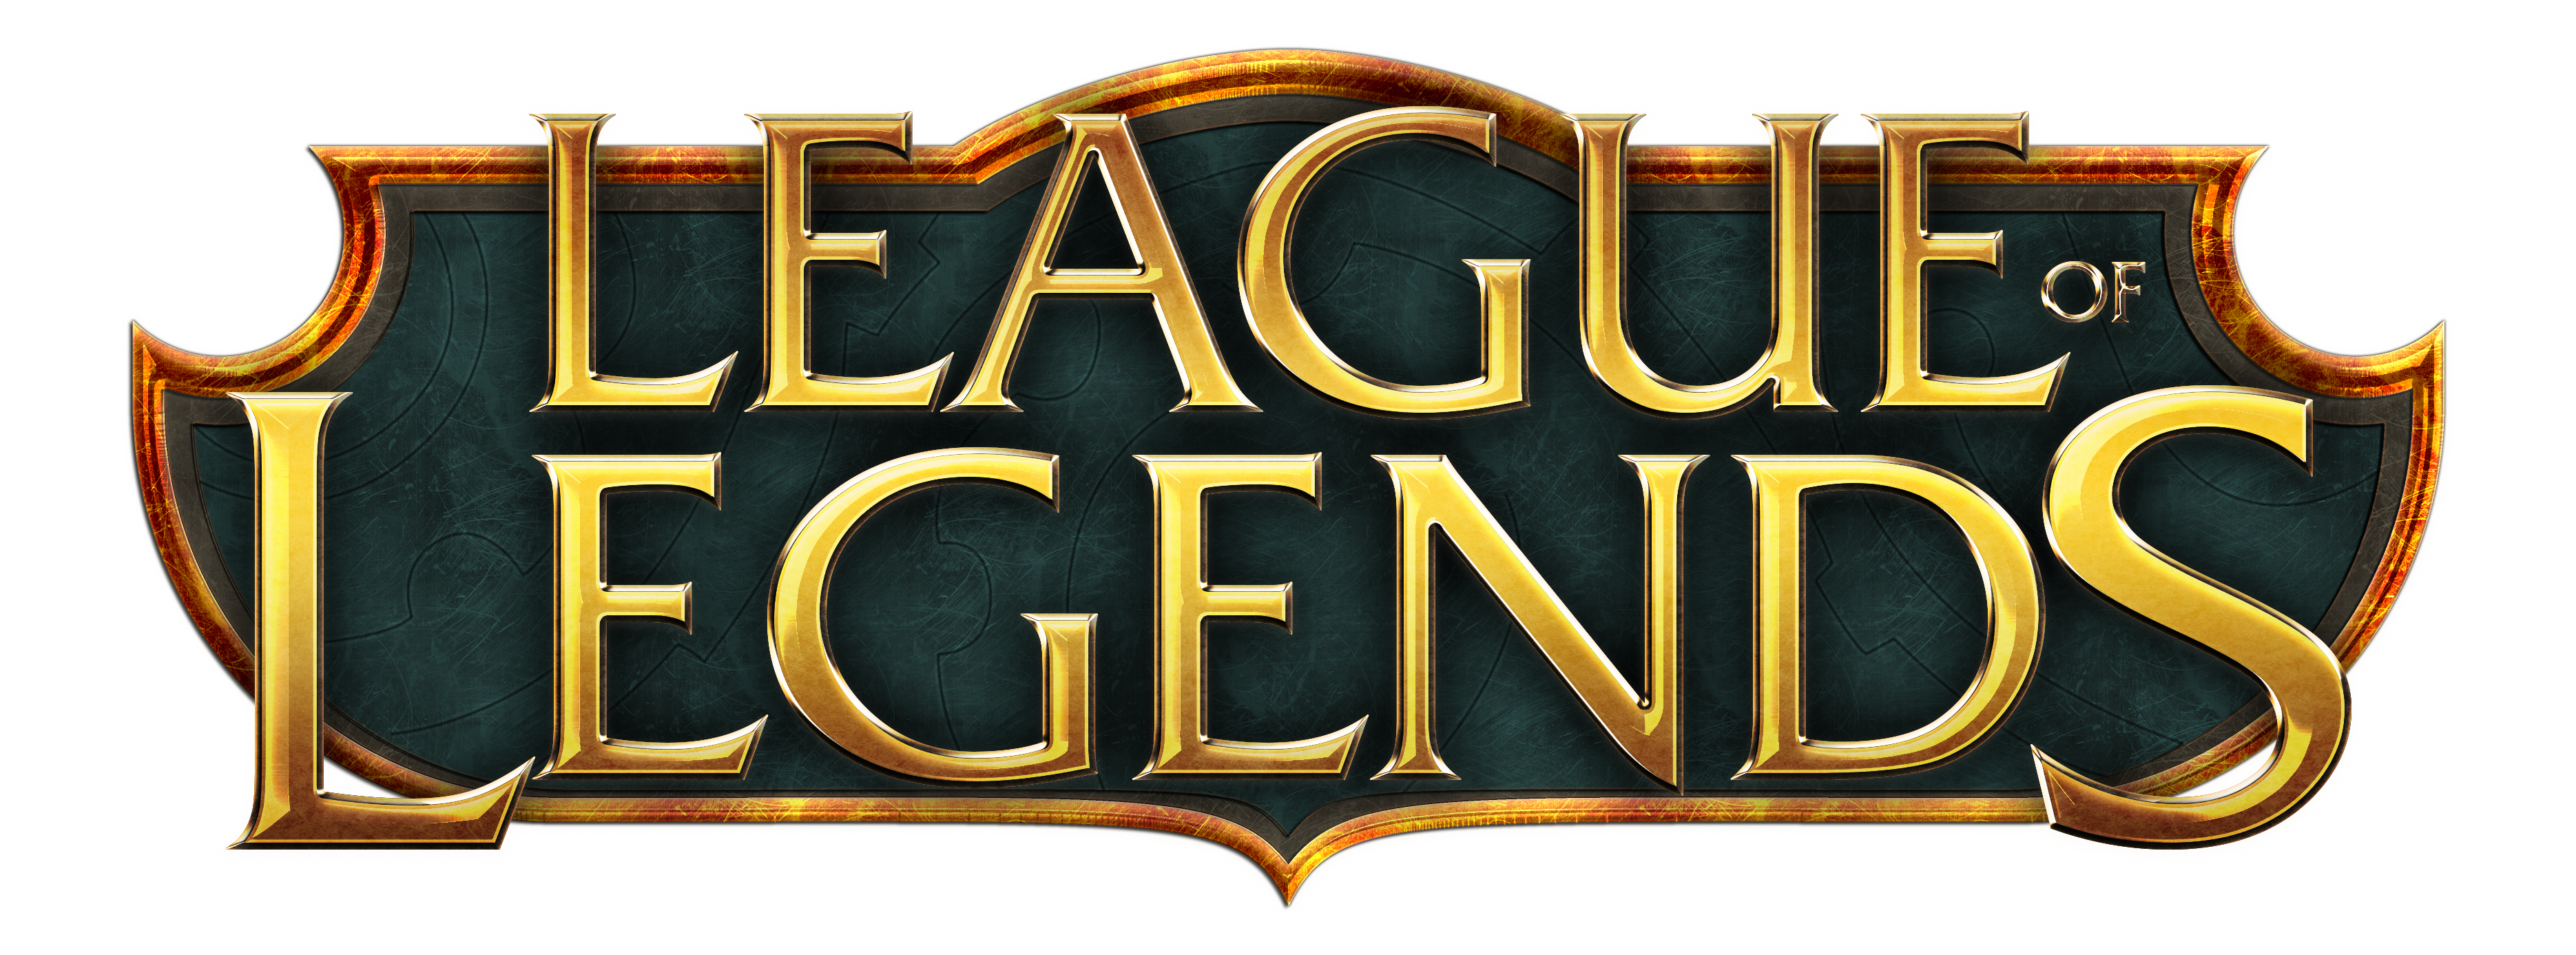 League Championship Legends Mobile Of Brand Bang PNG Image